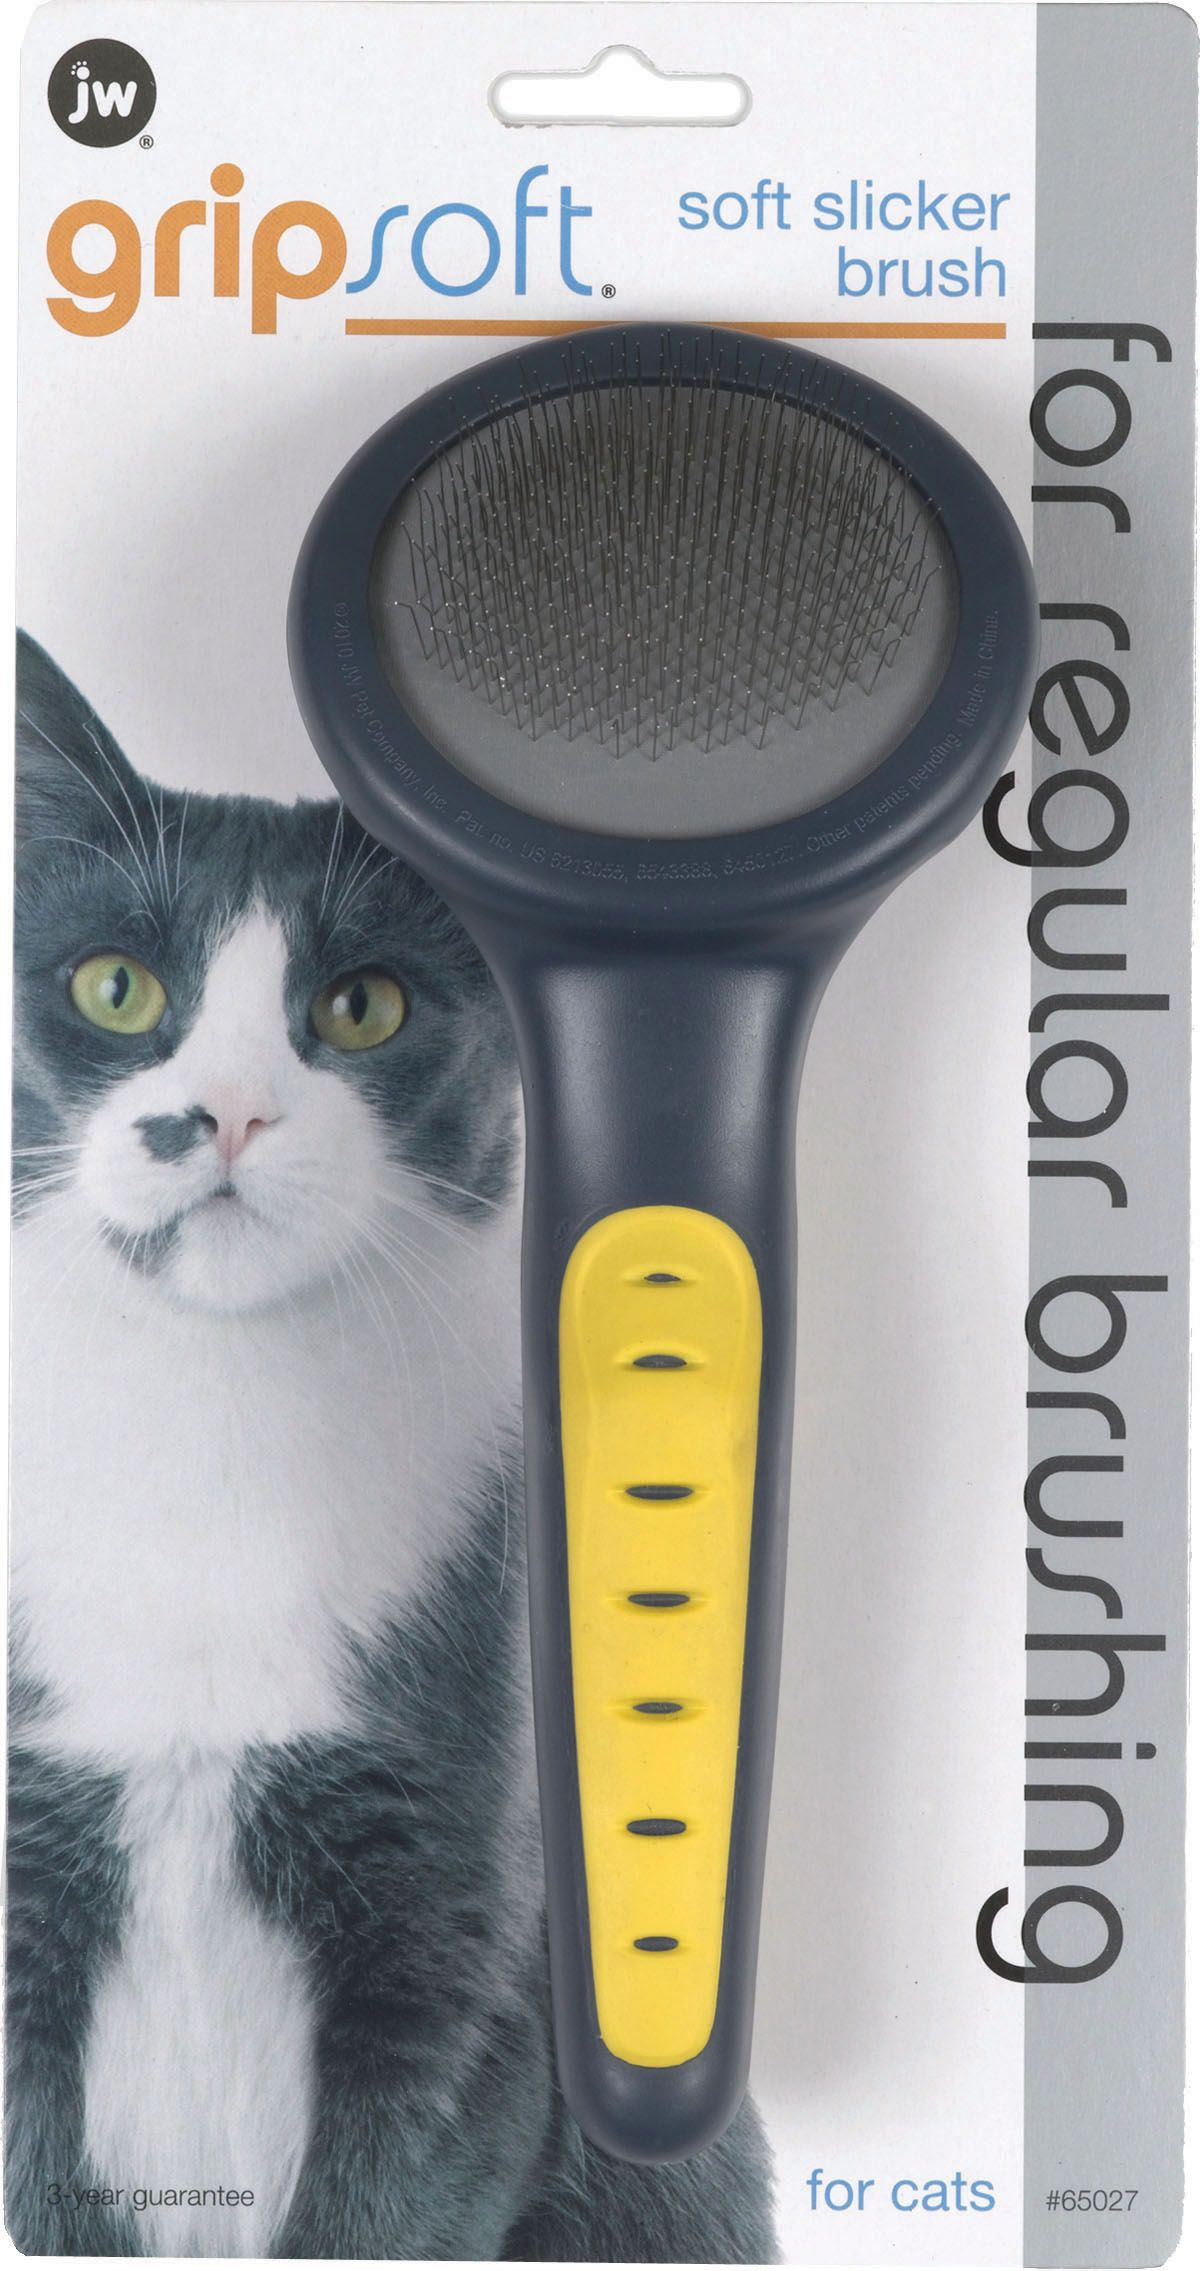 Cats Gripsoft Cat Slicker Brush By Jw Check More At Https Terrashopia Com Product Cats Gripsoft Cat Slicker Brush By Jw In 2020 Cat Brushing Pet Companies Jw Pet